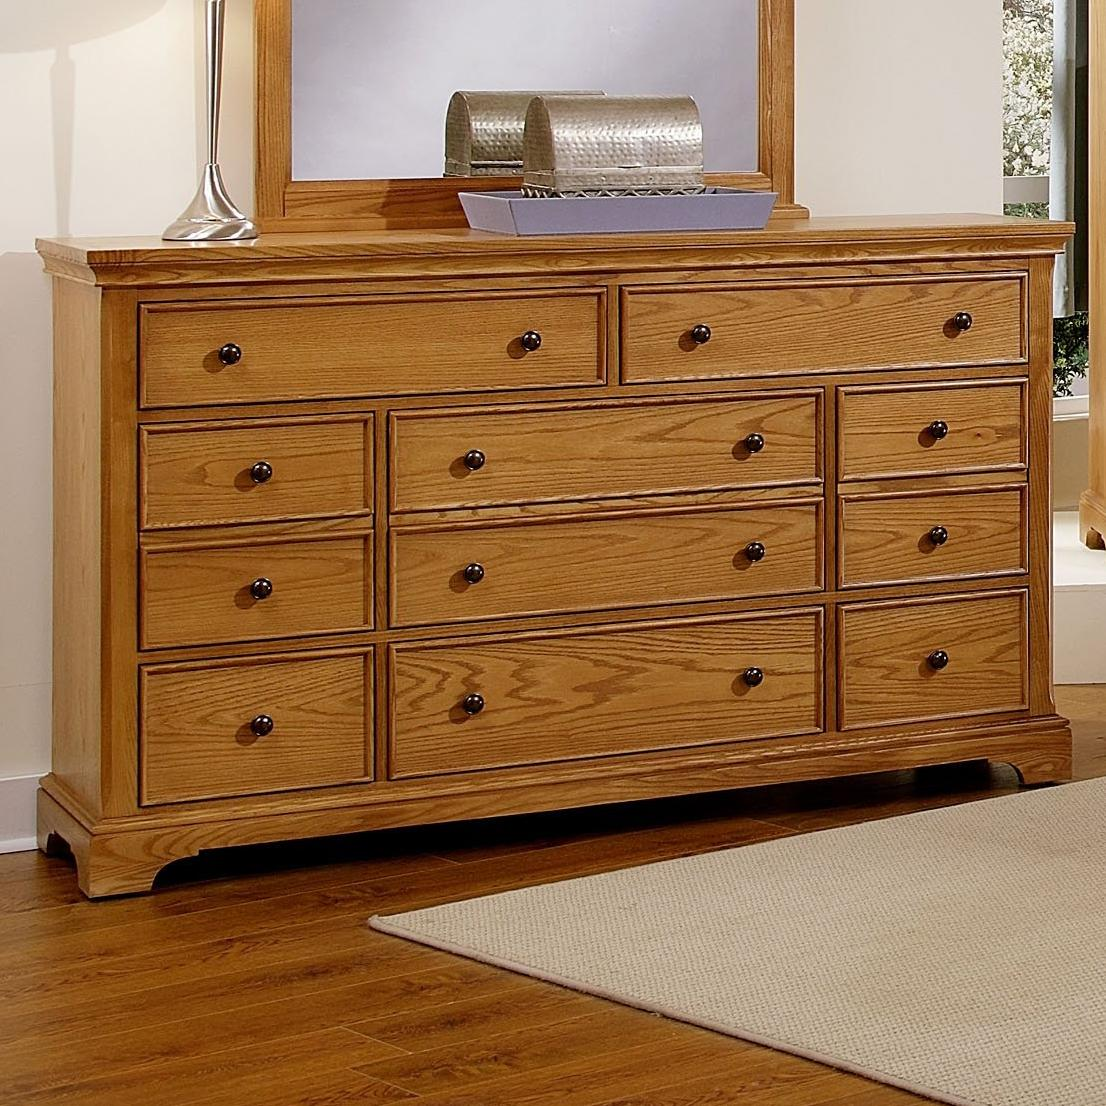 Vaughan Bassett Forsyth 8 Drawer Dresser - Item Number: BB75-003